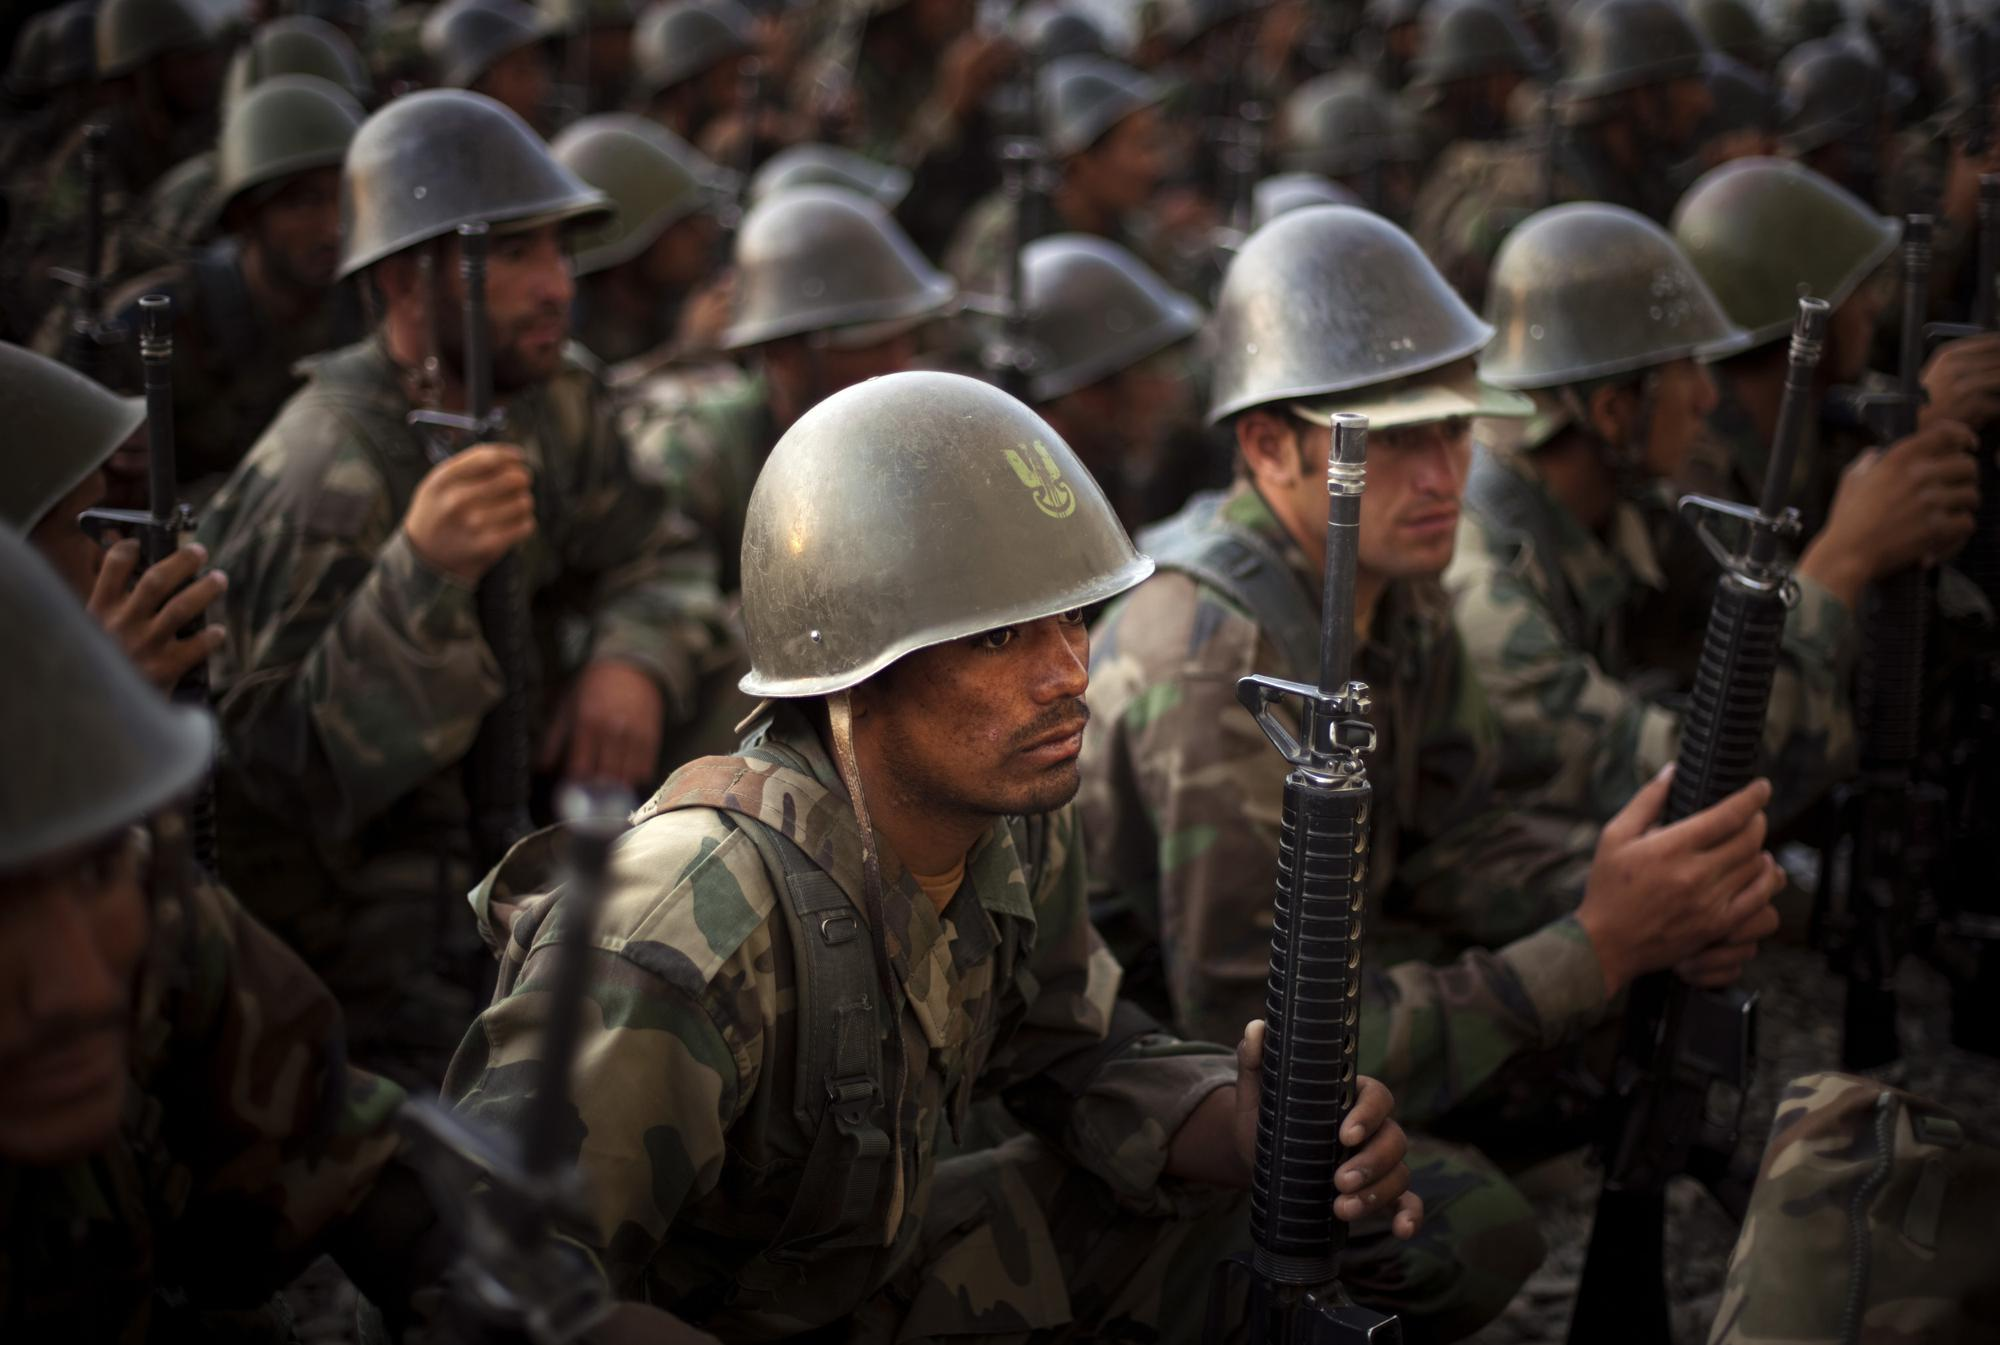 Afghan National Army recruits listen to the explanations of their instructor during a training session at the Kabul Military Training Center in Afghanistan, Sunday, July 19, 2009. (AP Photo/Emilio Morenatti)